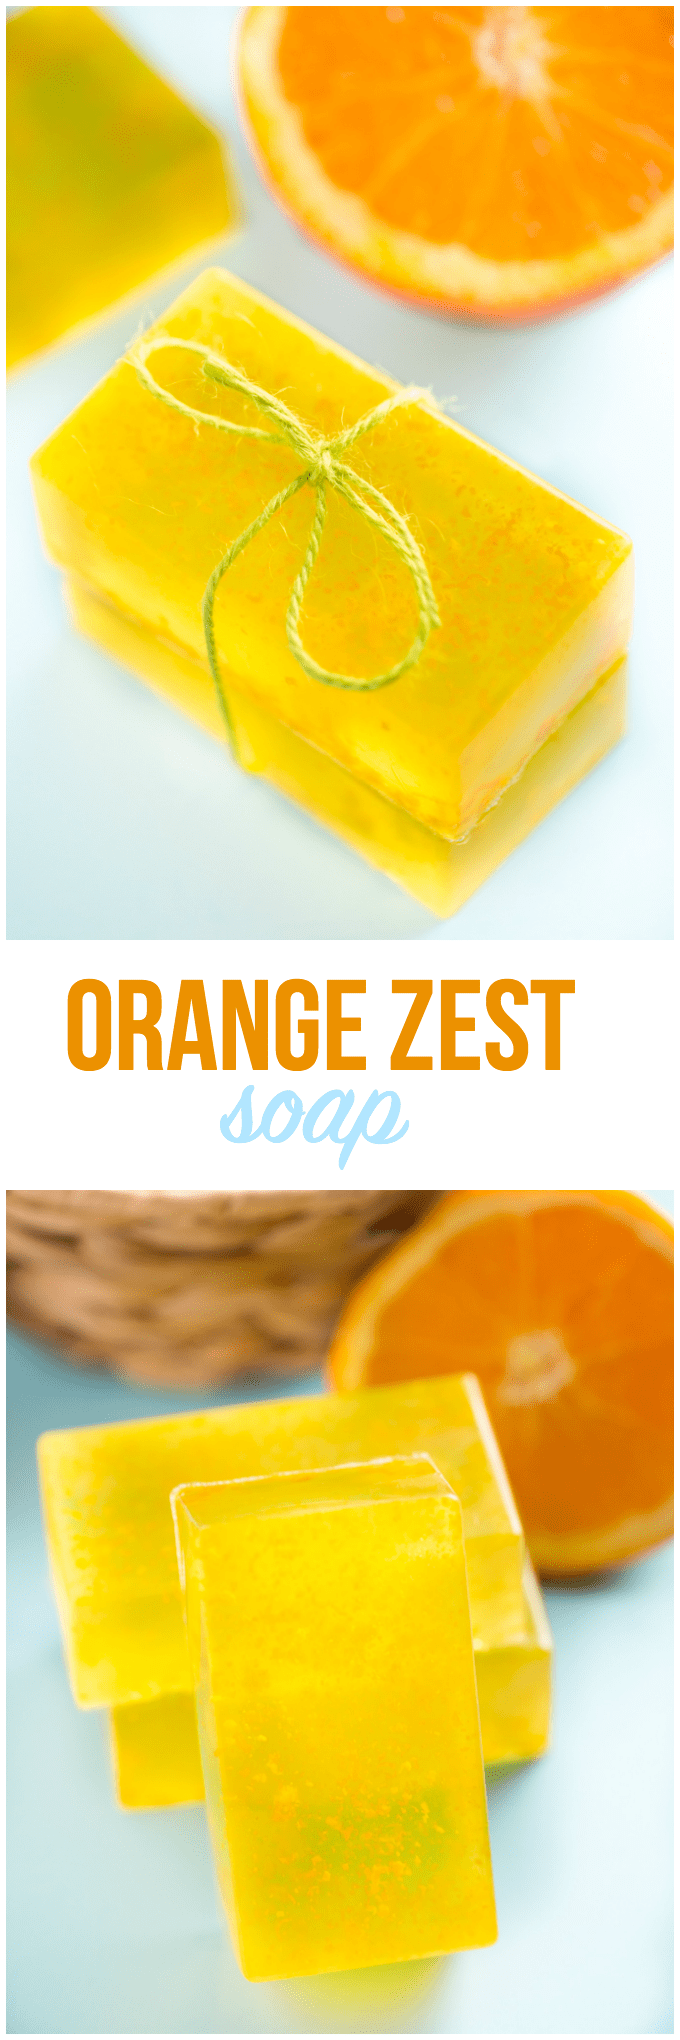 Orange Zest Soap - Fresh and invigorating! Make up a batch of this lovely glycerine soap for your family in under an hour.